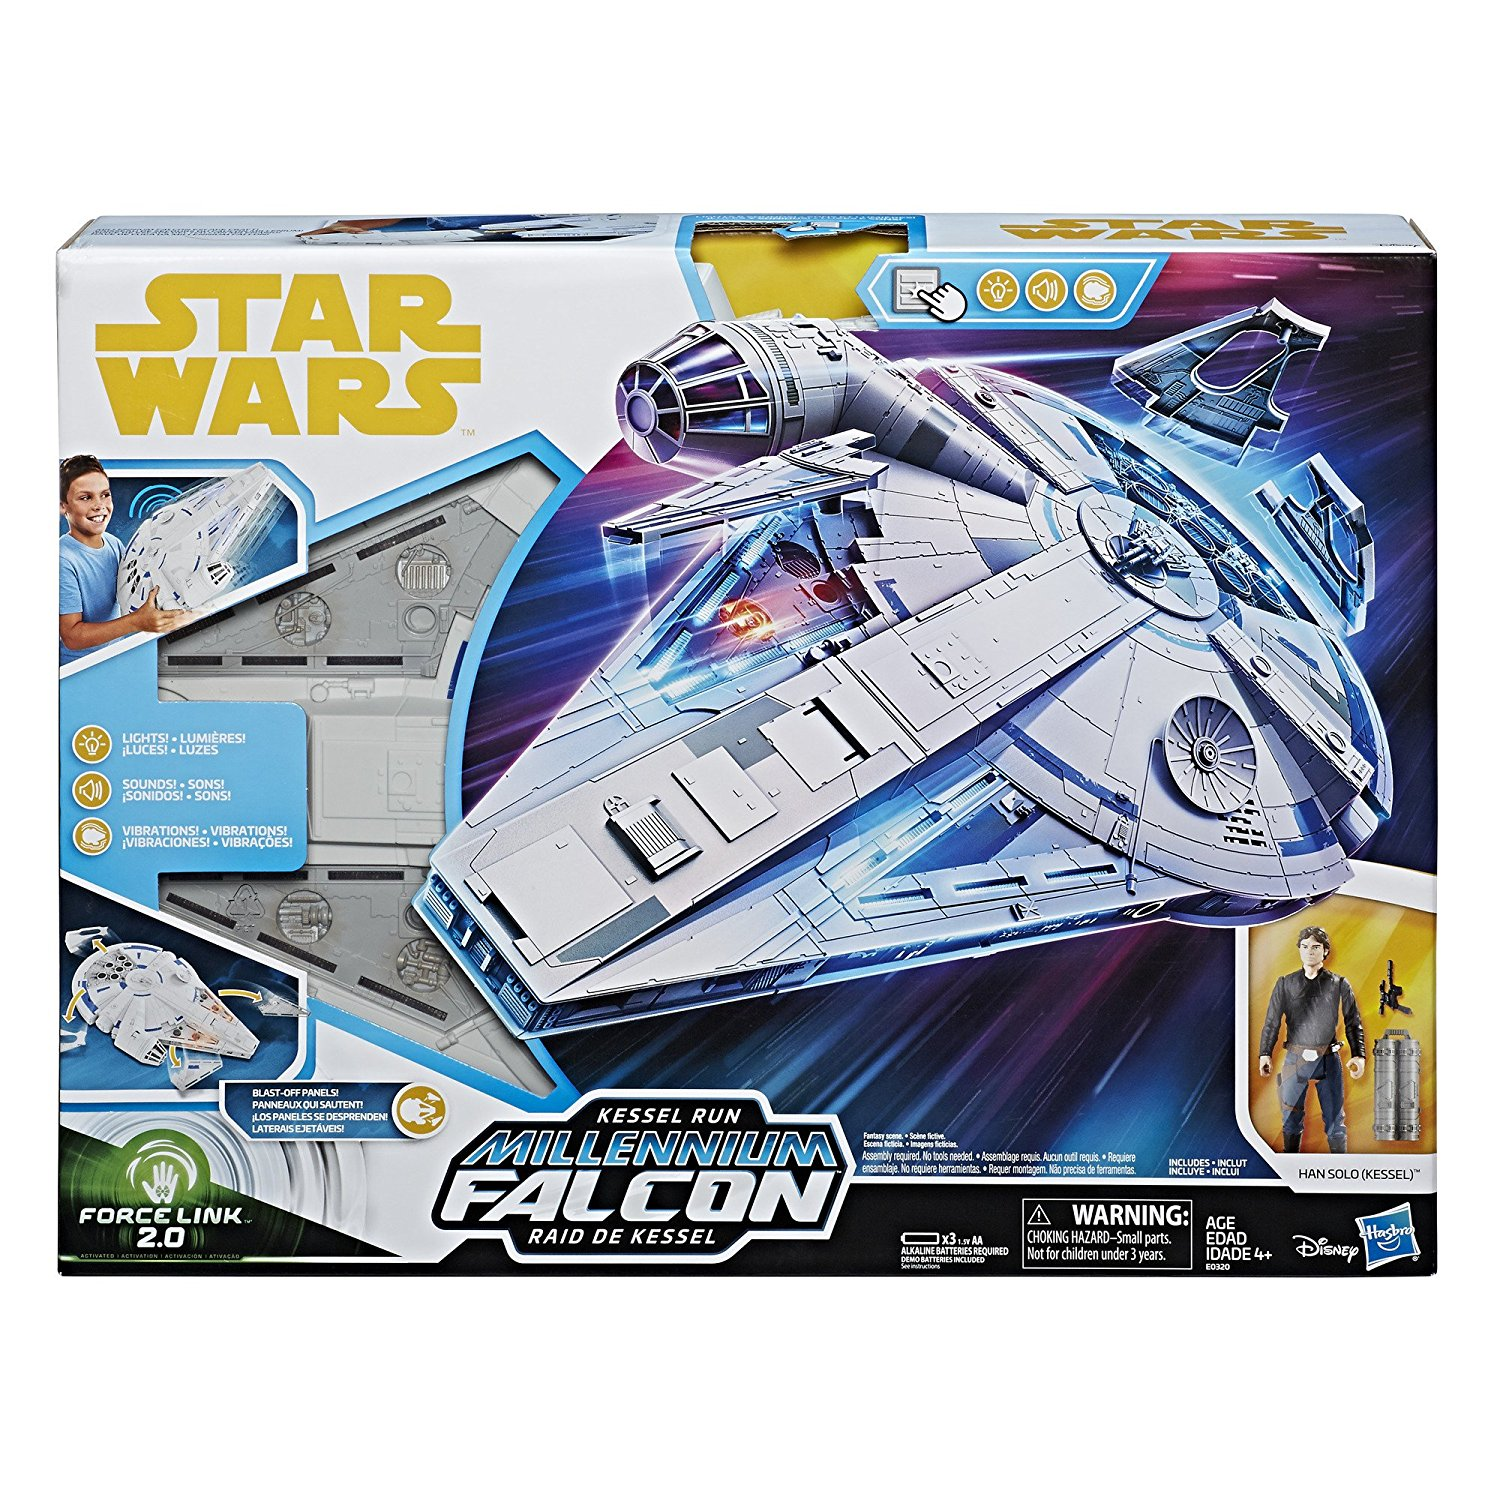 New Solo A Star Wars Story Force Link Vehicle Toys Rundown